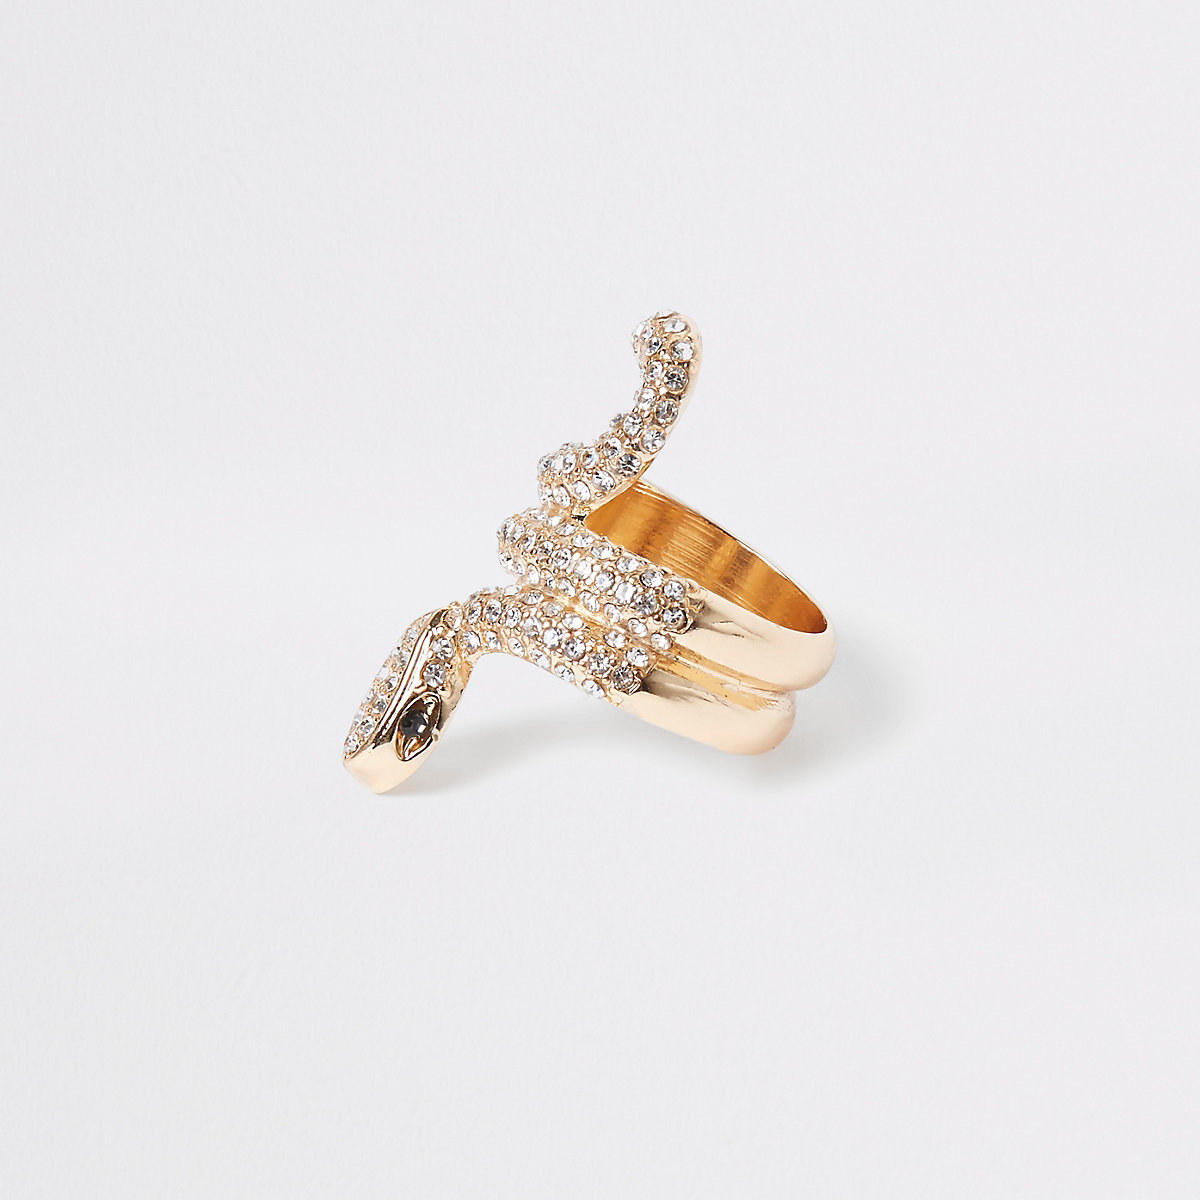 Gold colour diamante paved snake ring